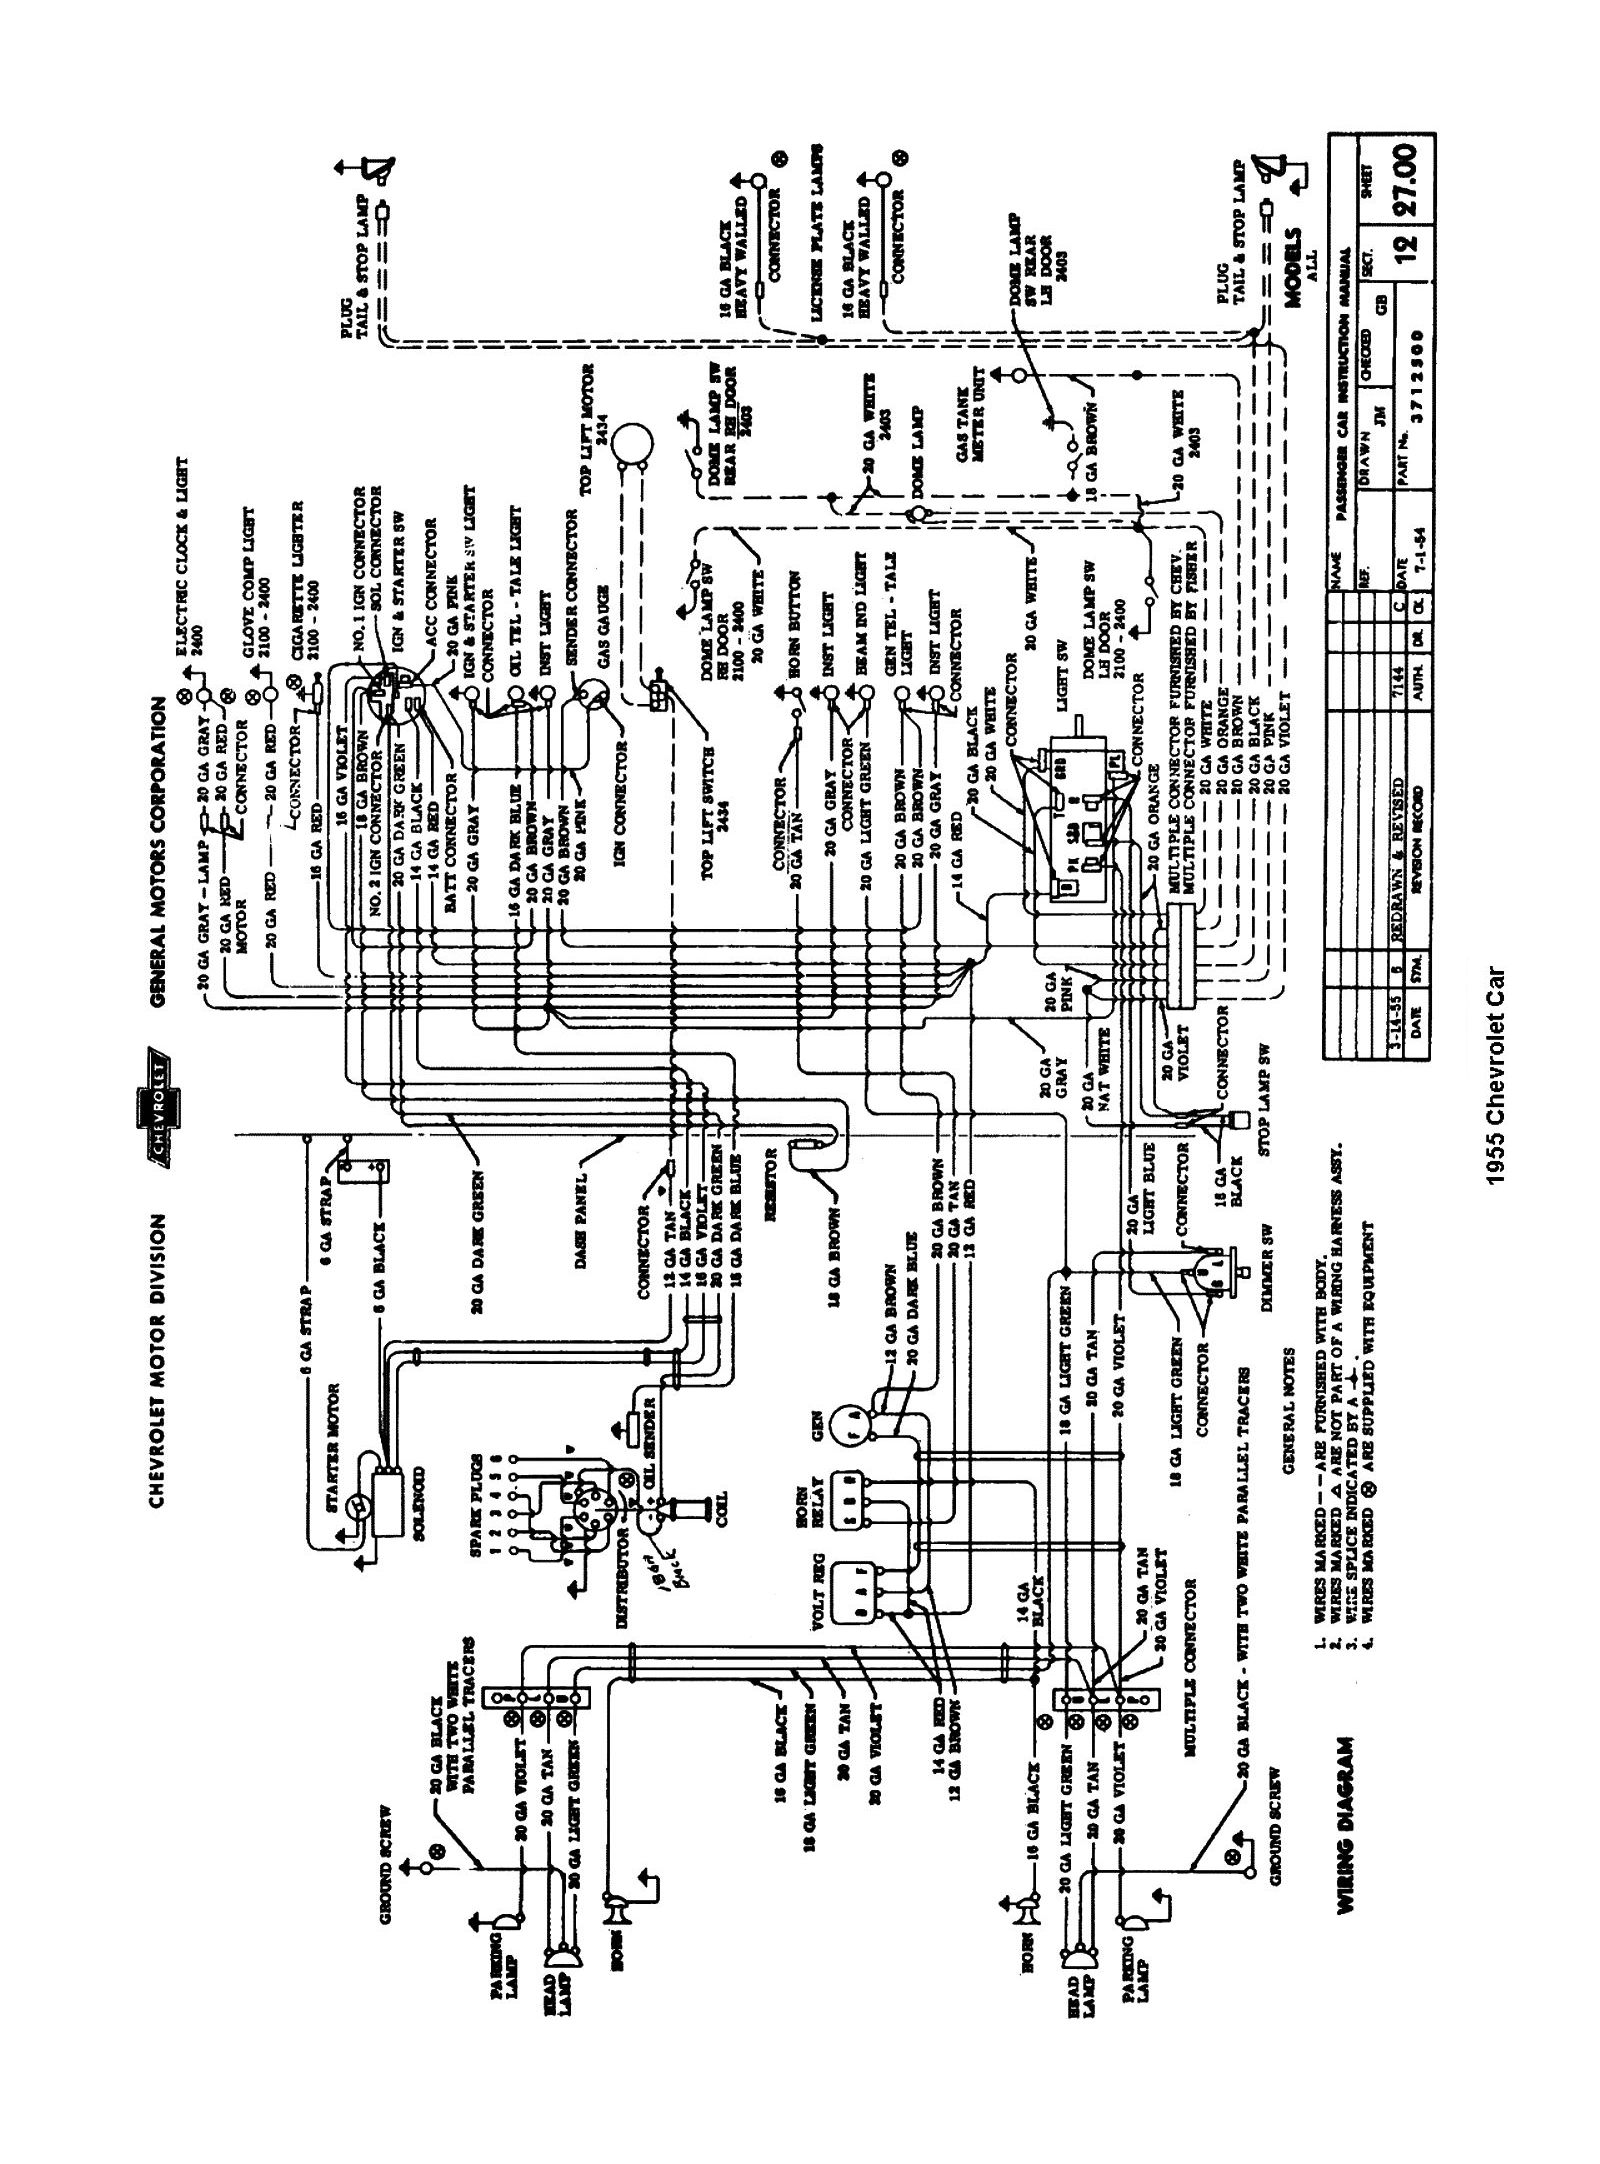 olds steering column wiring diagram